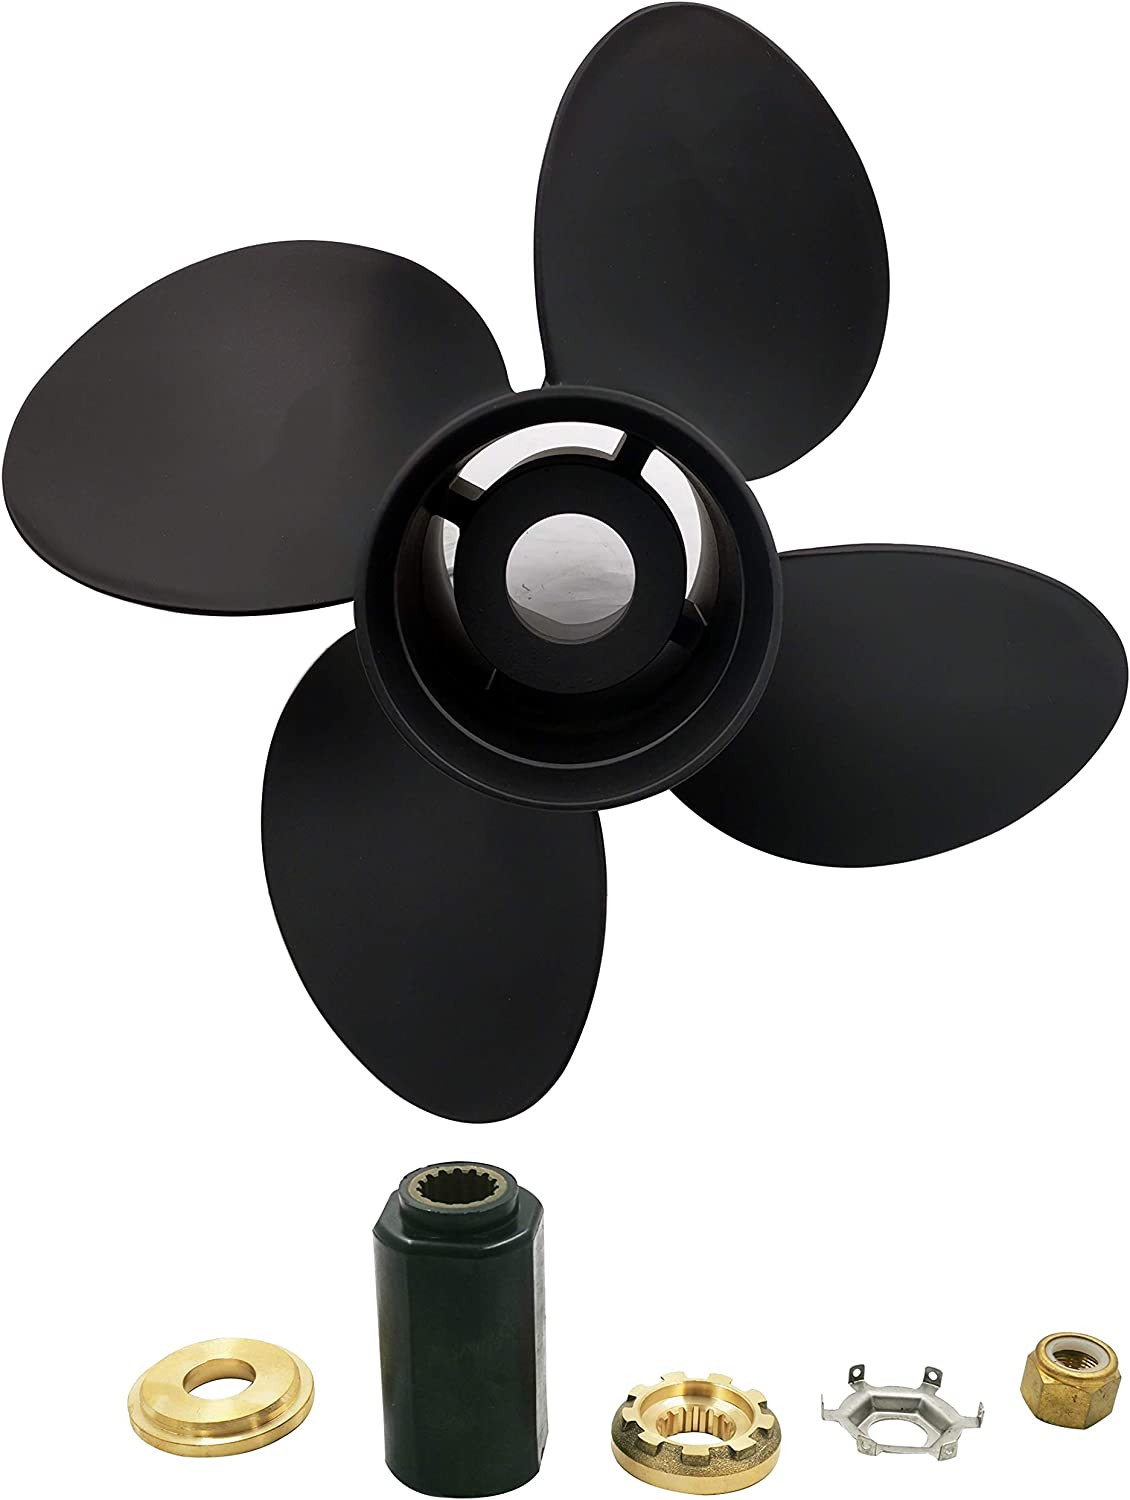 POLAMAX Aluminum 4 Blade Prop Propeller with Interchangeable Hub Kits for Mercury D 40-140HP